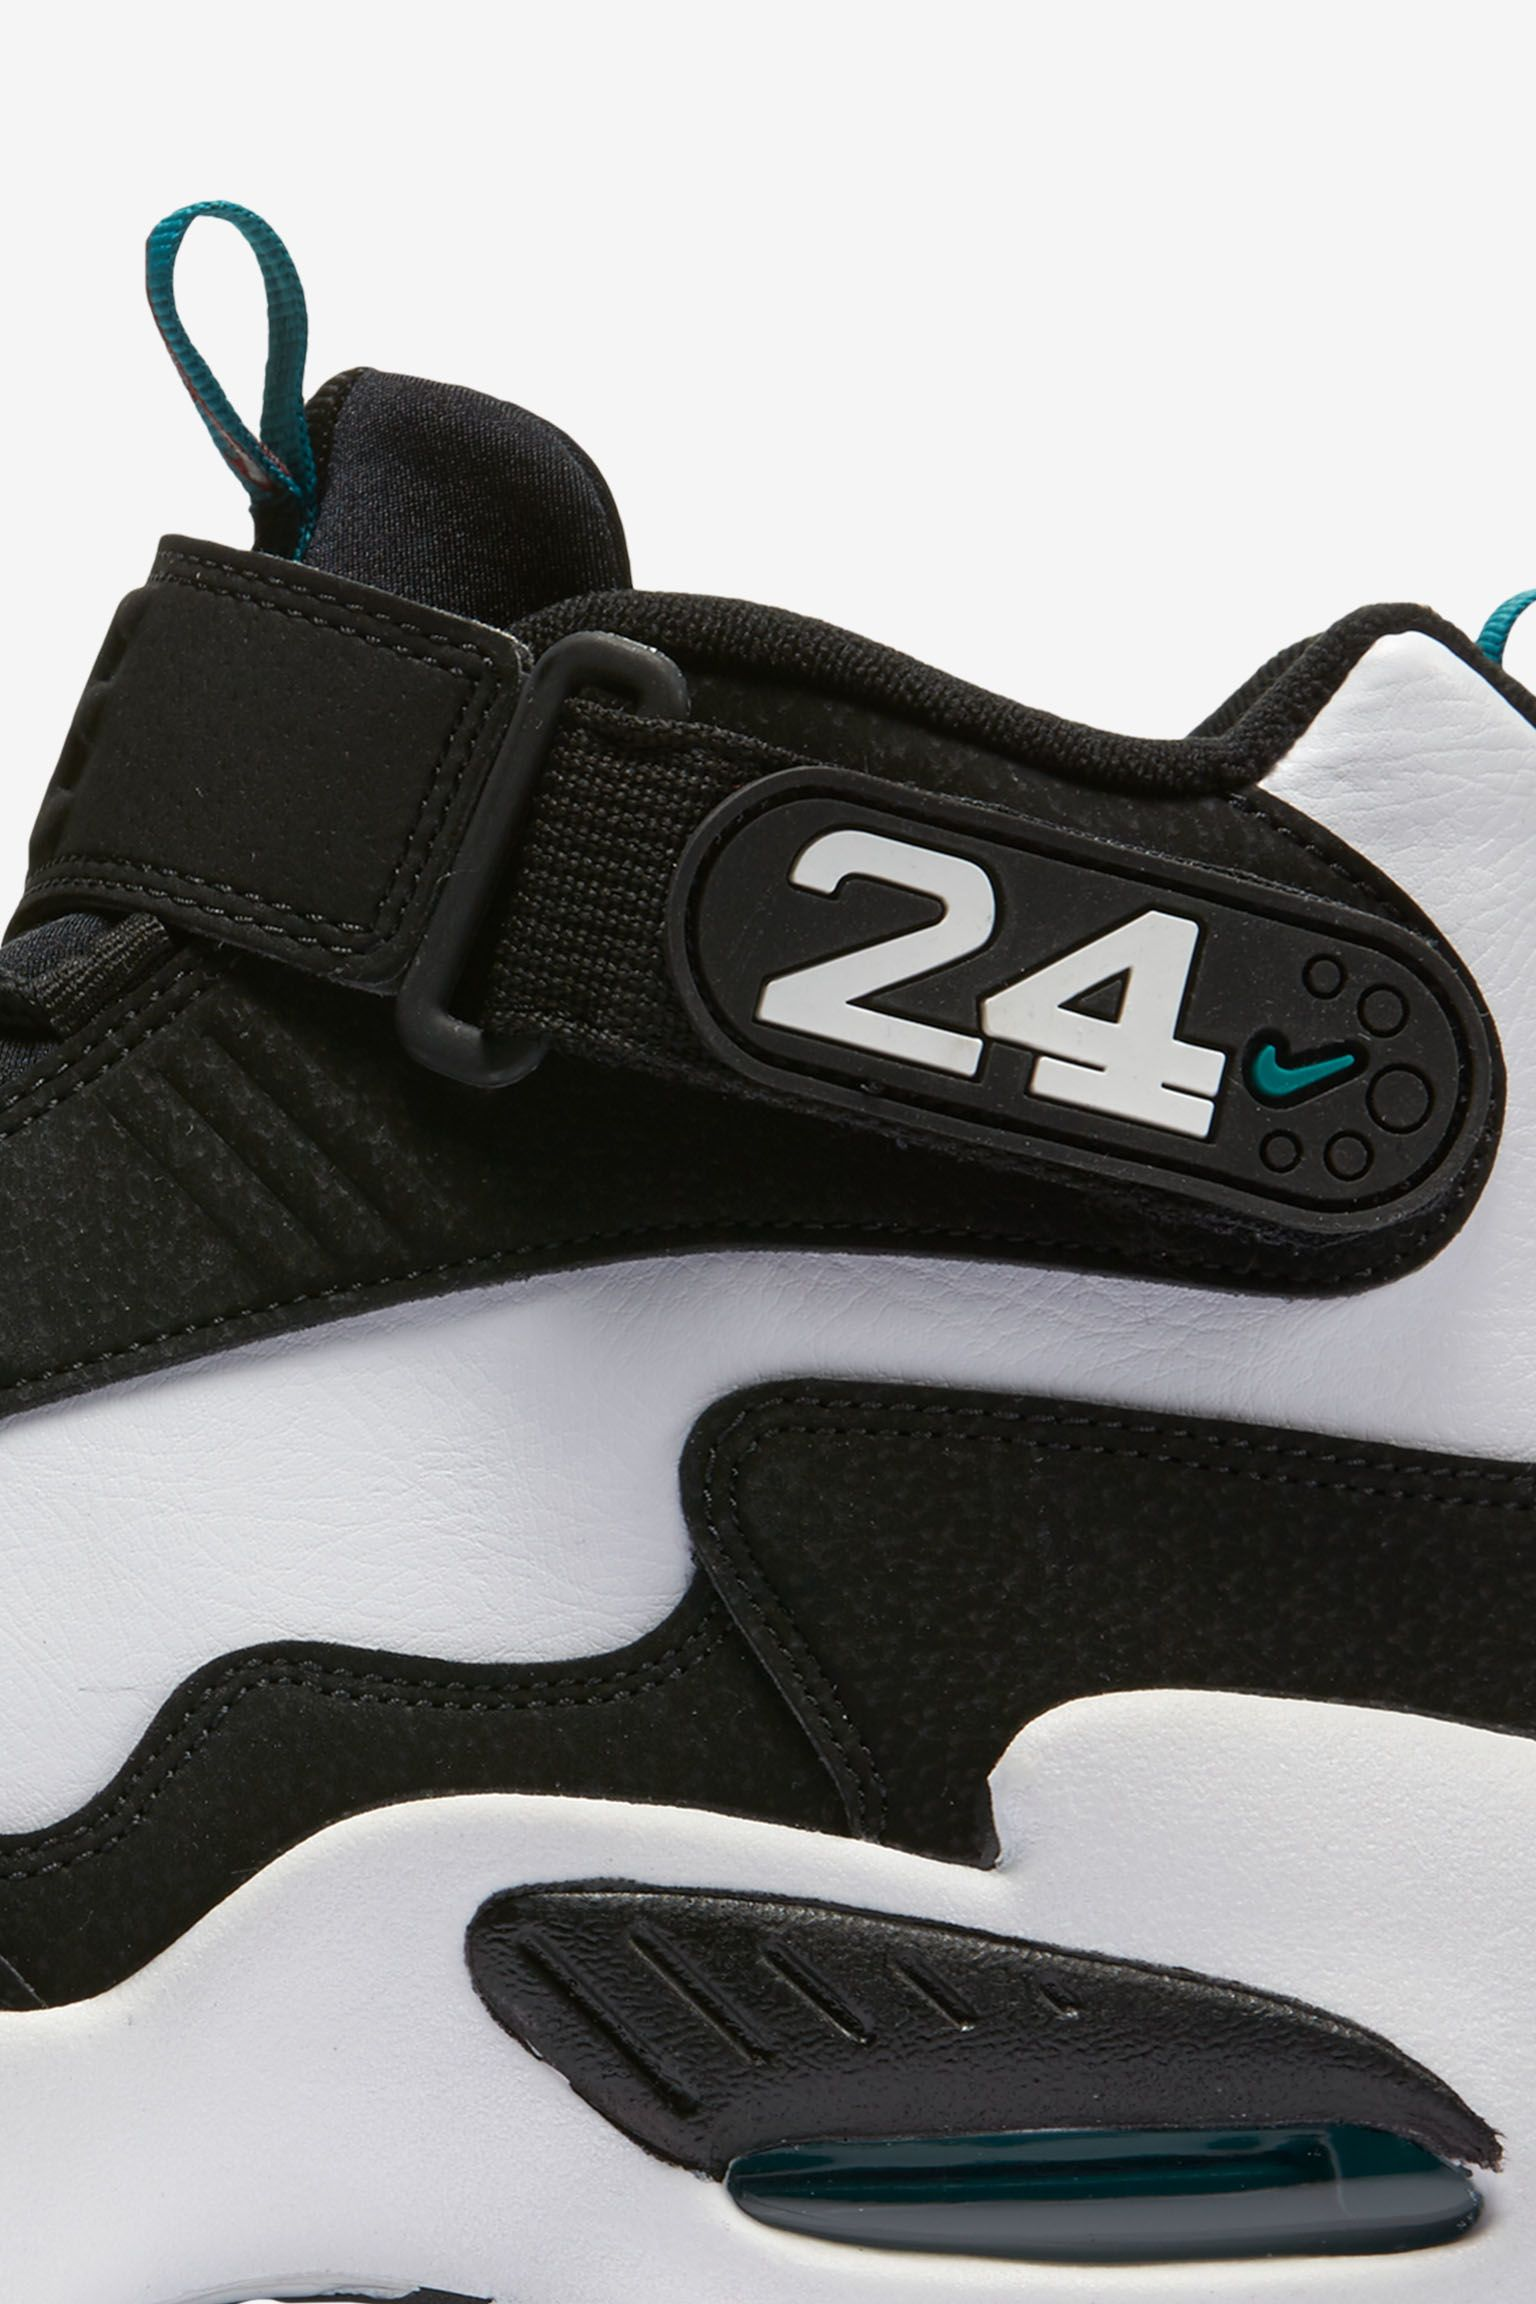 Nike Air Griffey Max 1 'The Kid' Release Date